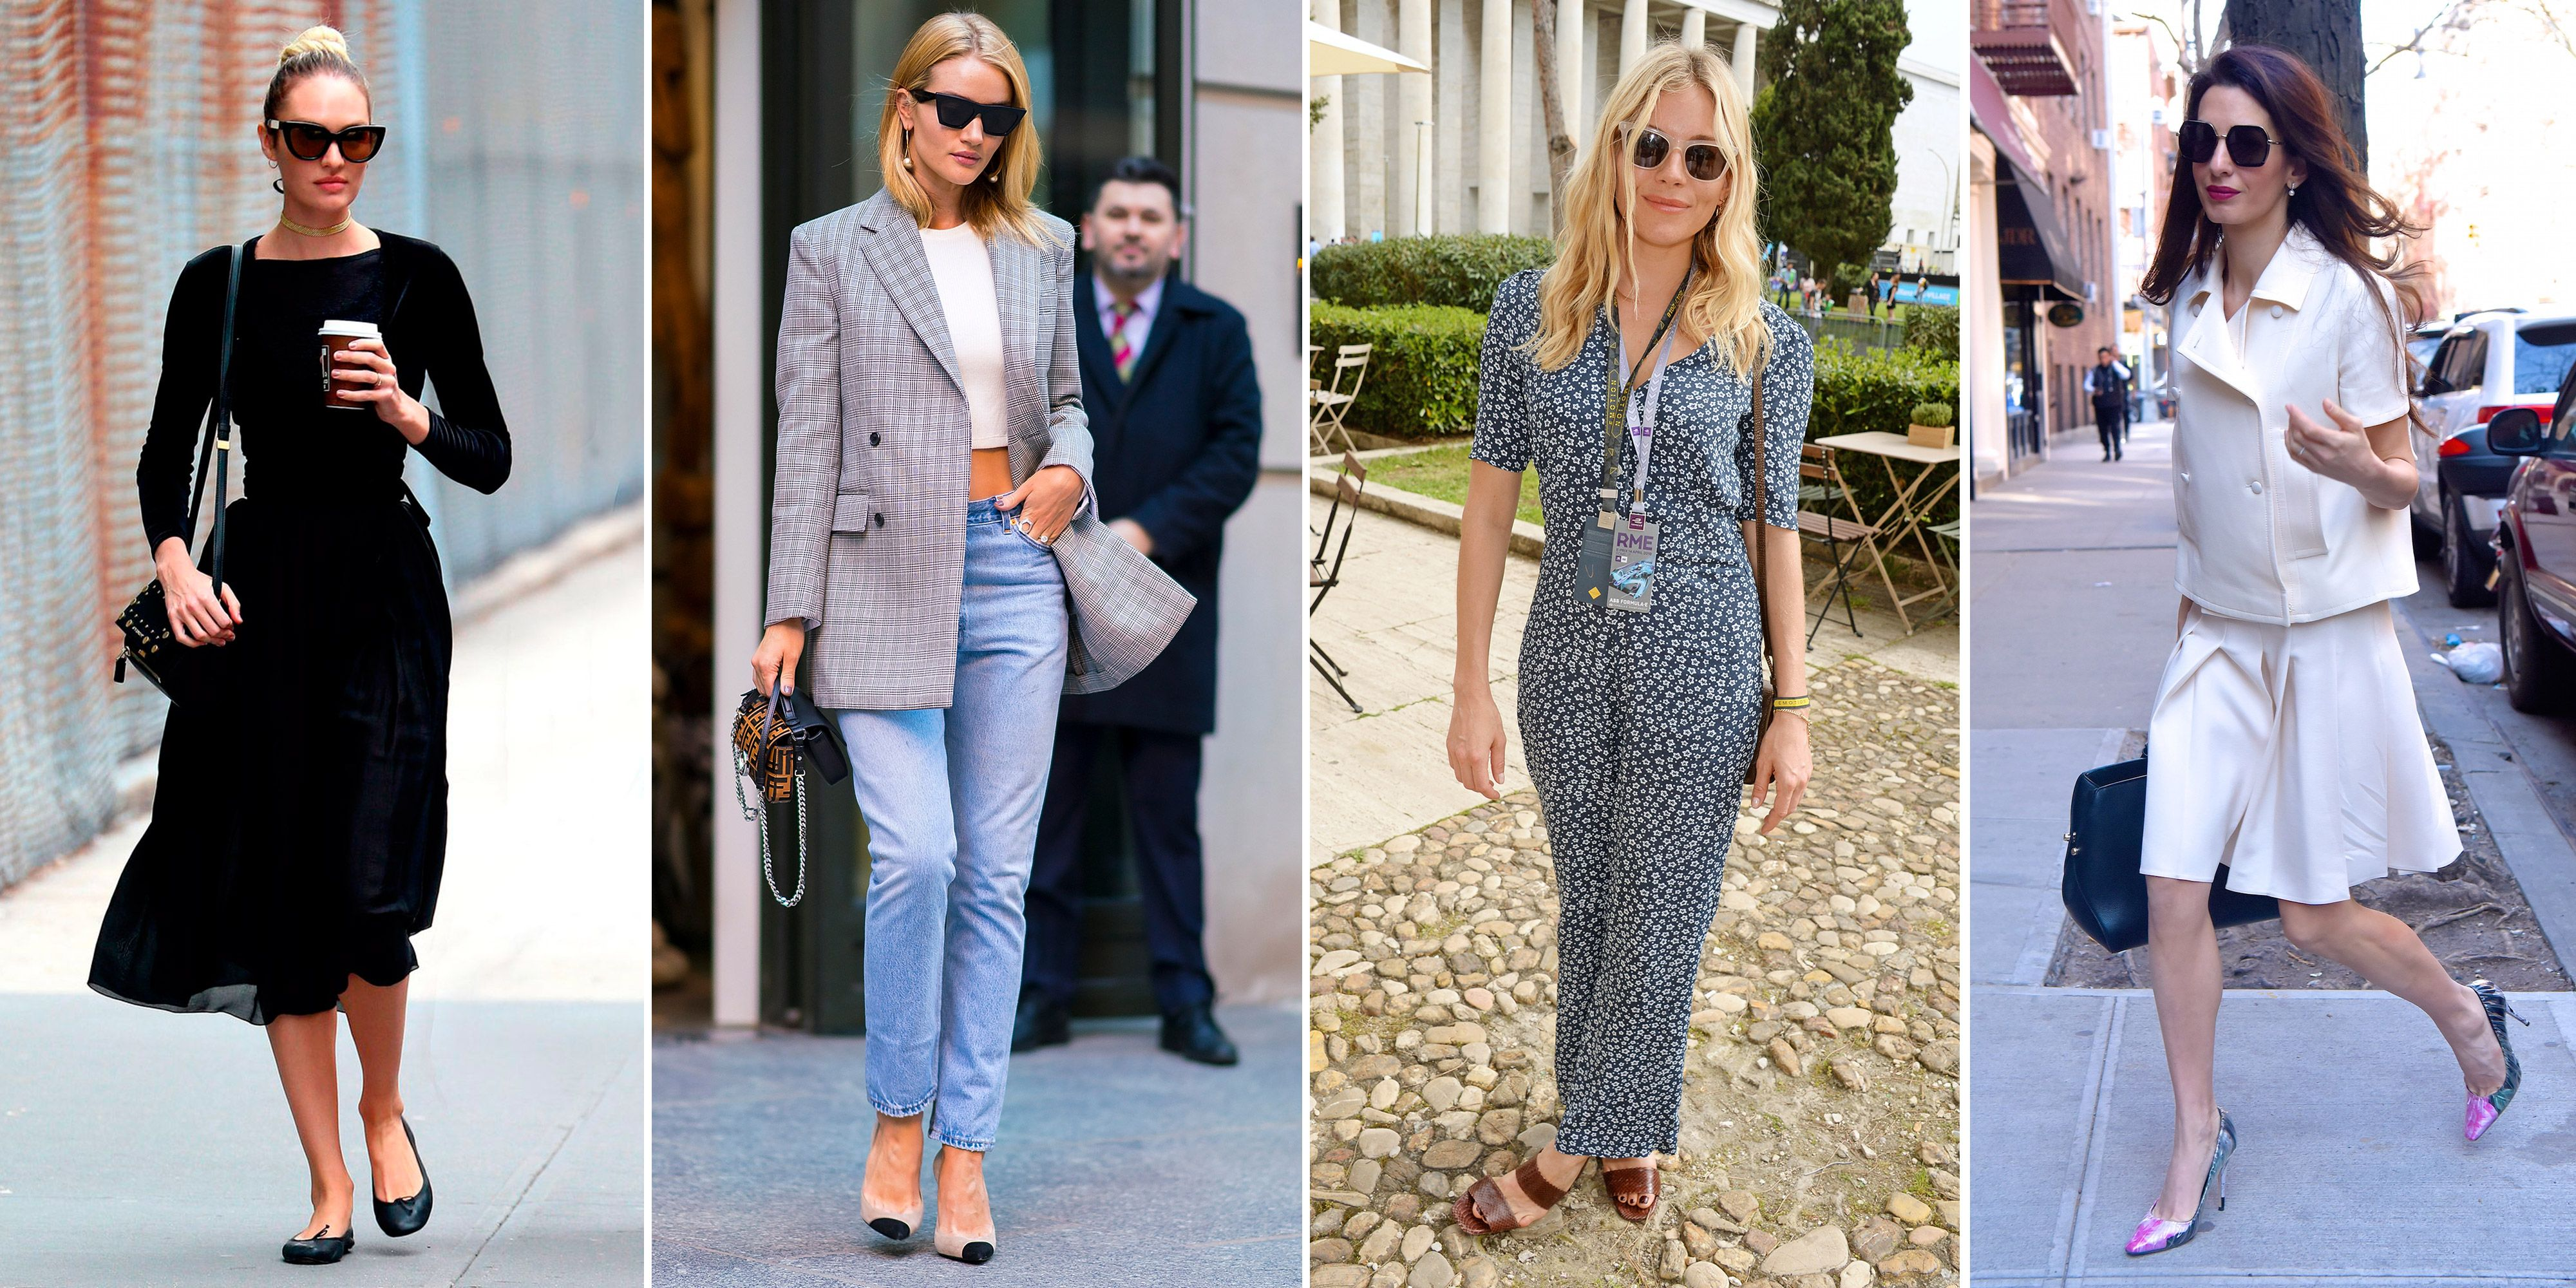 82147c4c00536 What to wear in spring – Spring style inspiration from celebrities